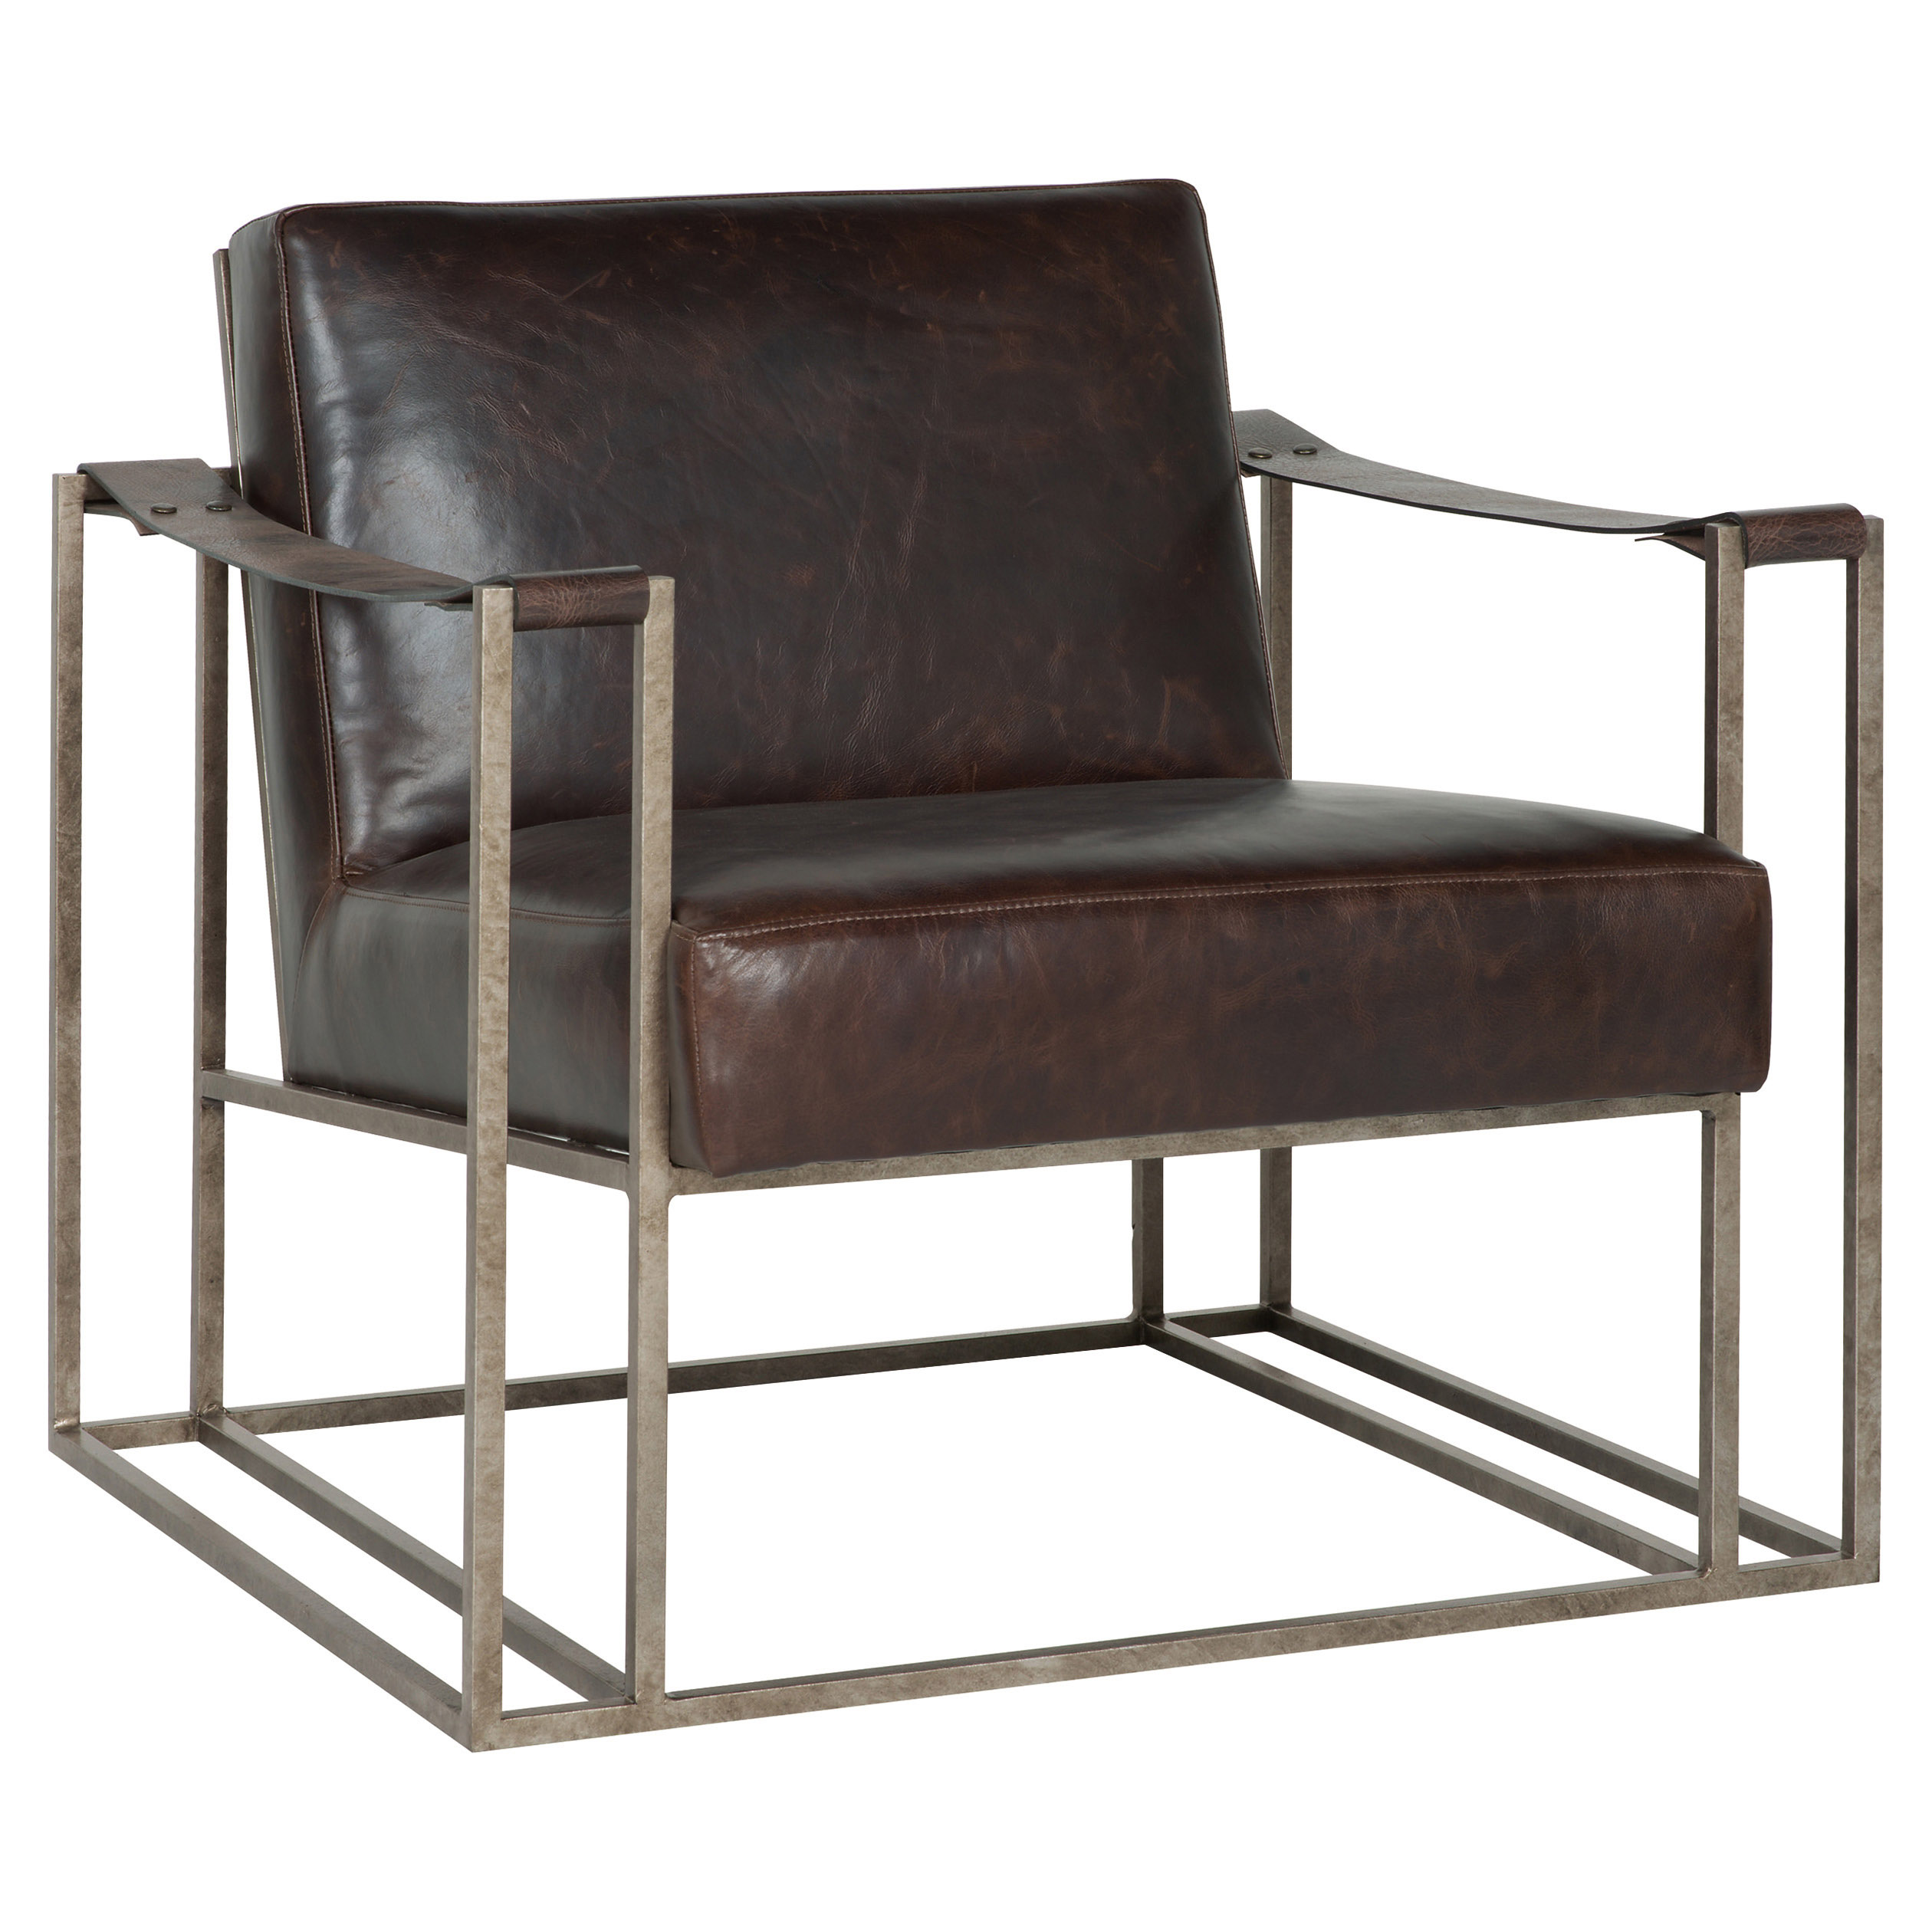 Gideon Industrial Silver Metal Leather Strap Armchair